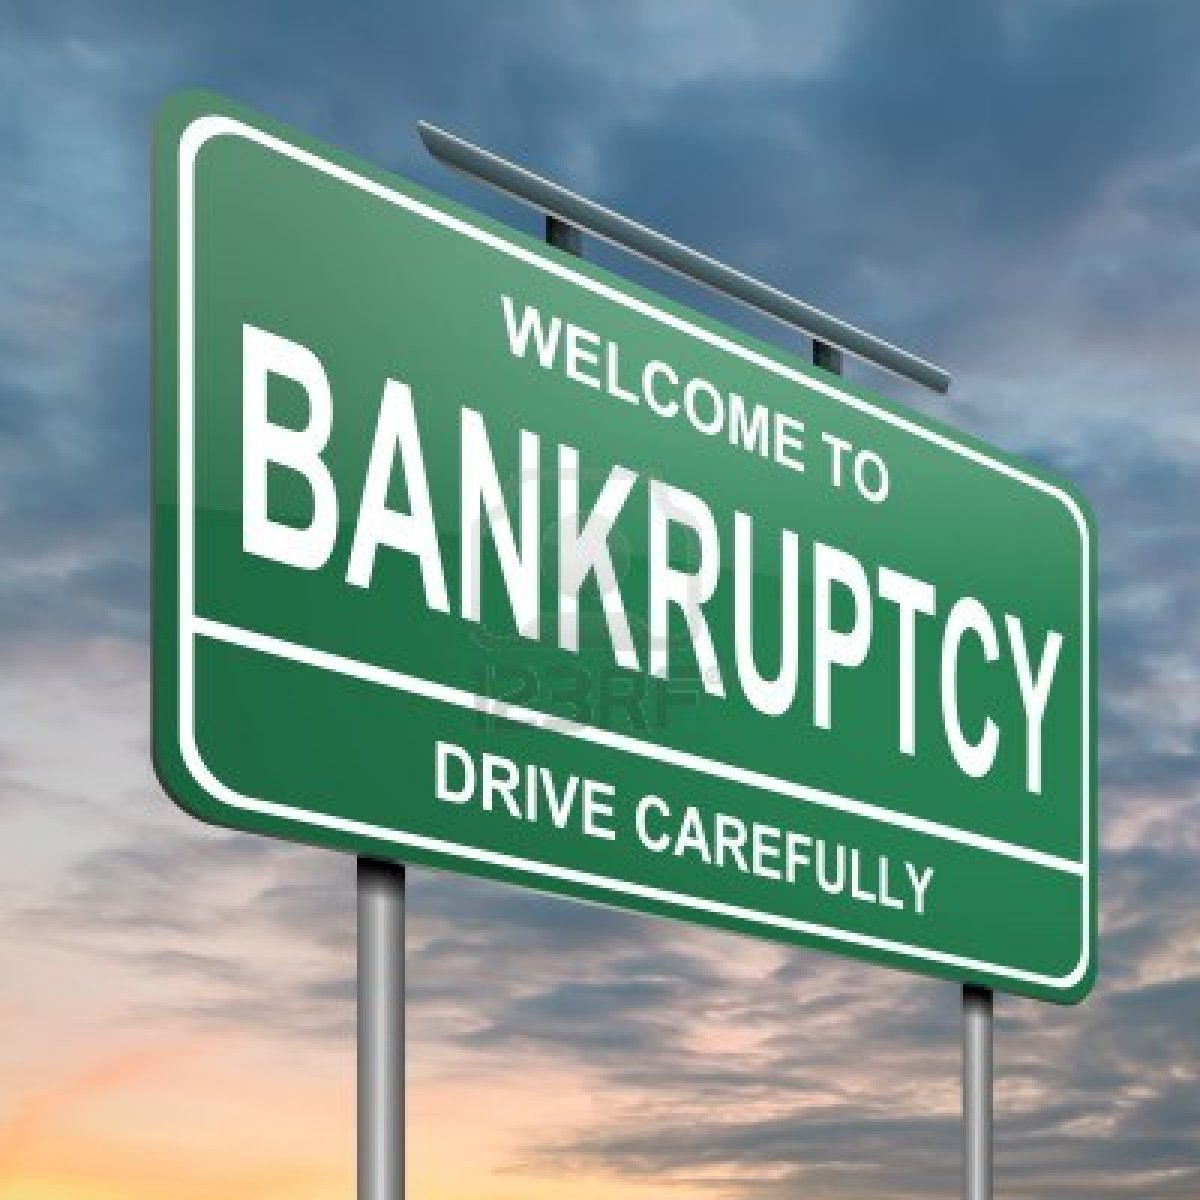 Common bankruptcy myths